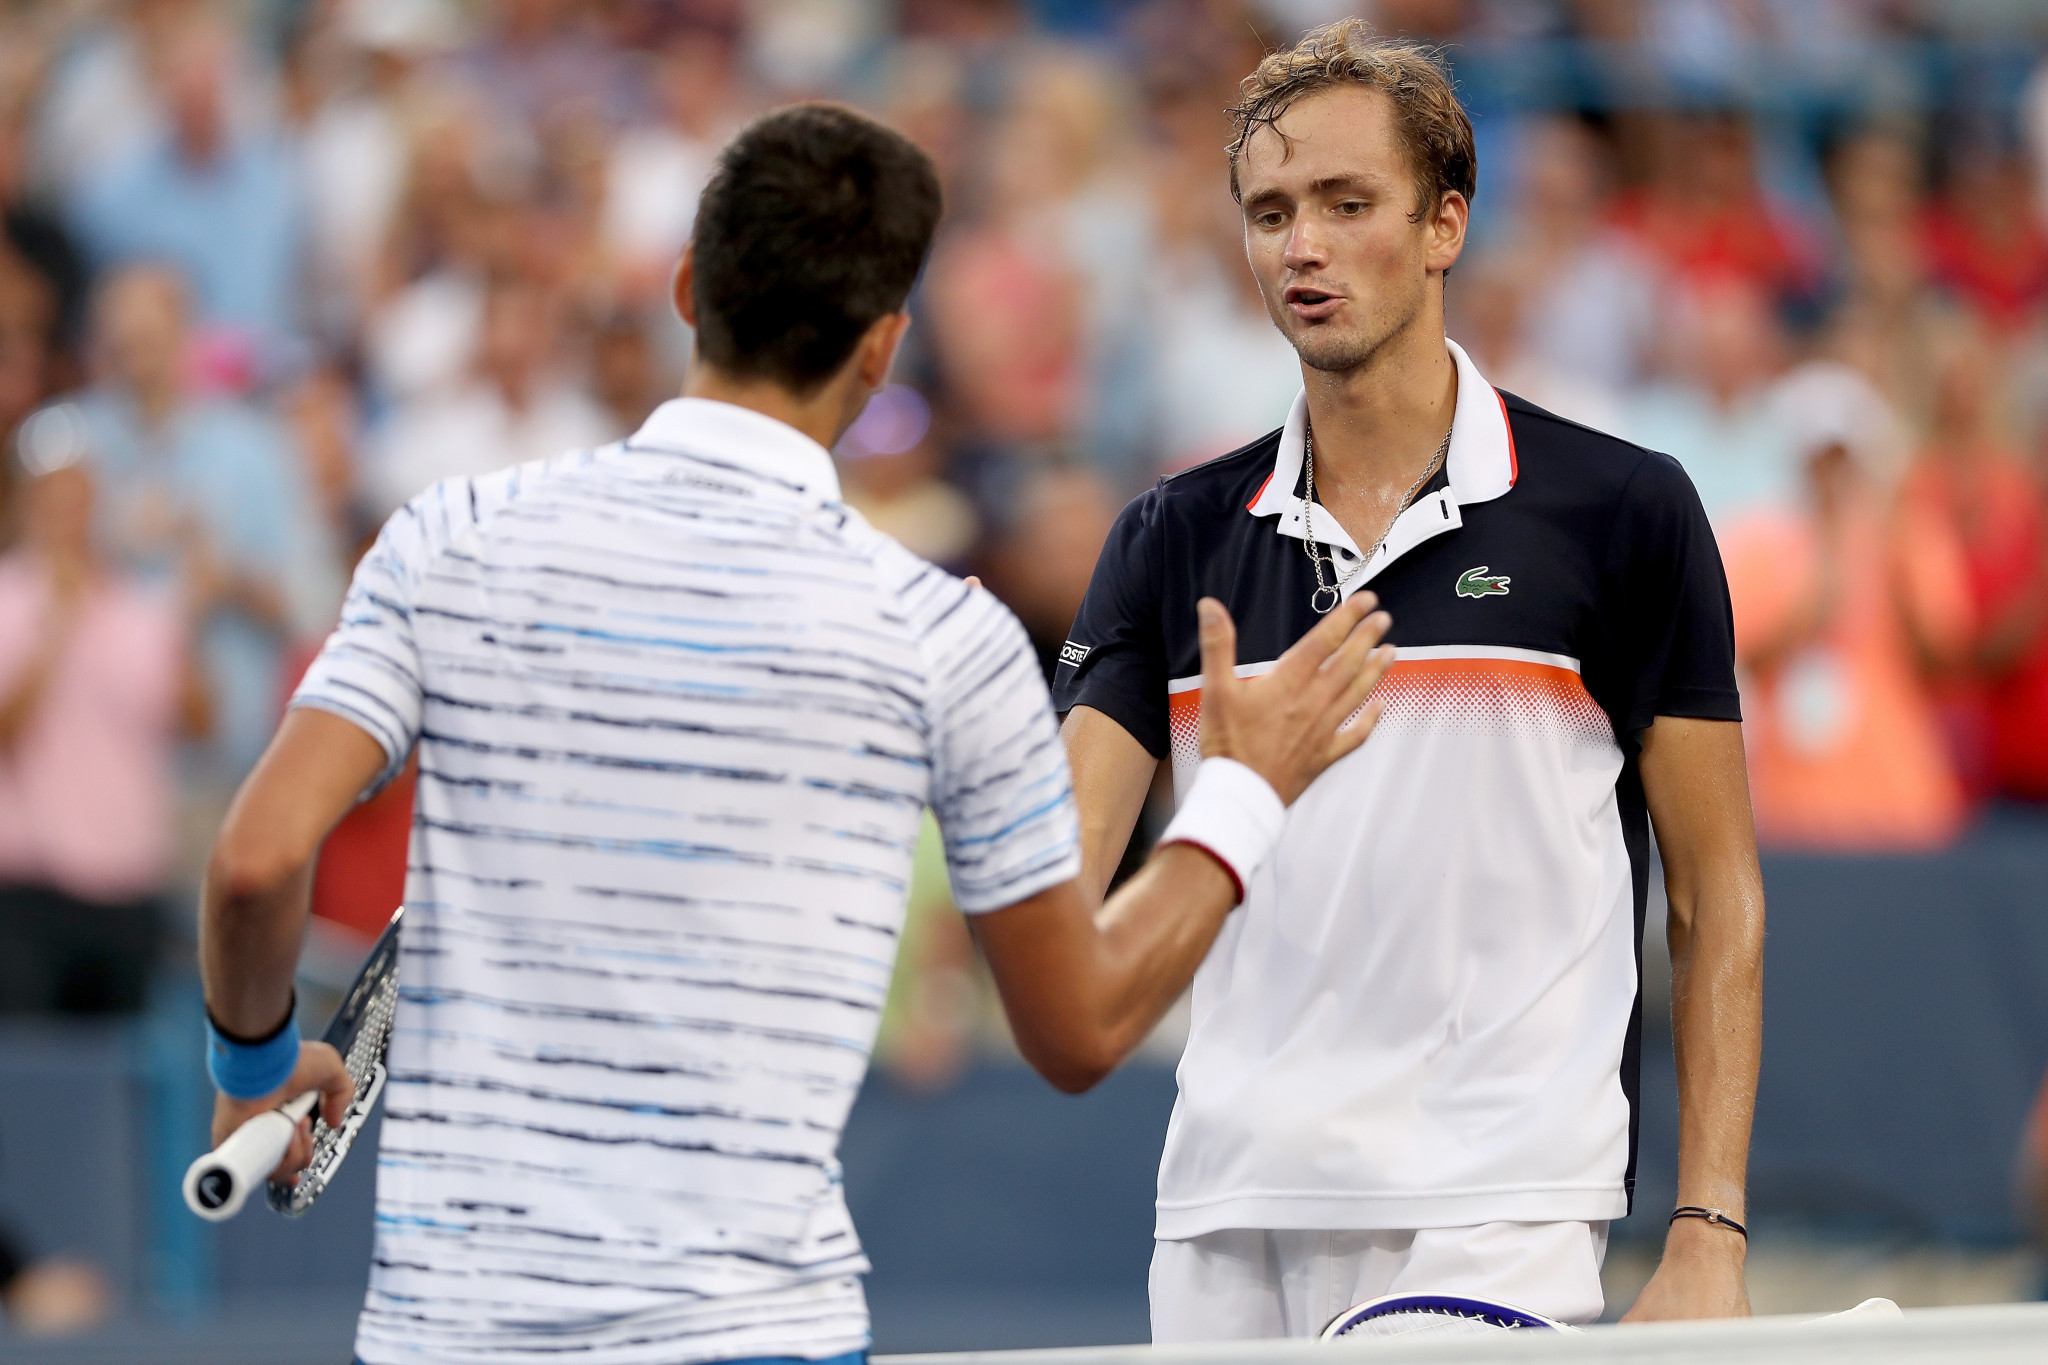 Serbian Novak Djokovic congratulates Daniil Medvedev of Russia after losing their semi-final clash ©Getty Images